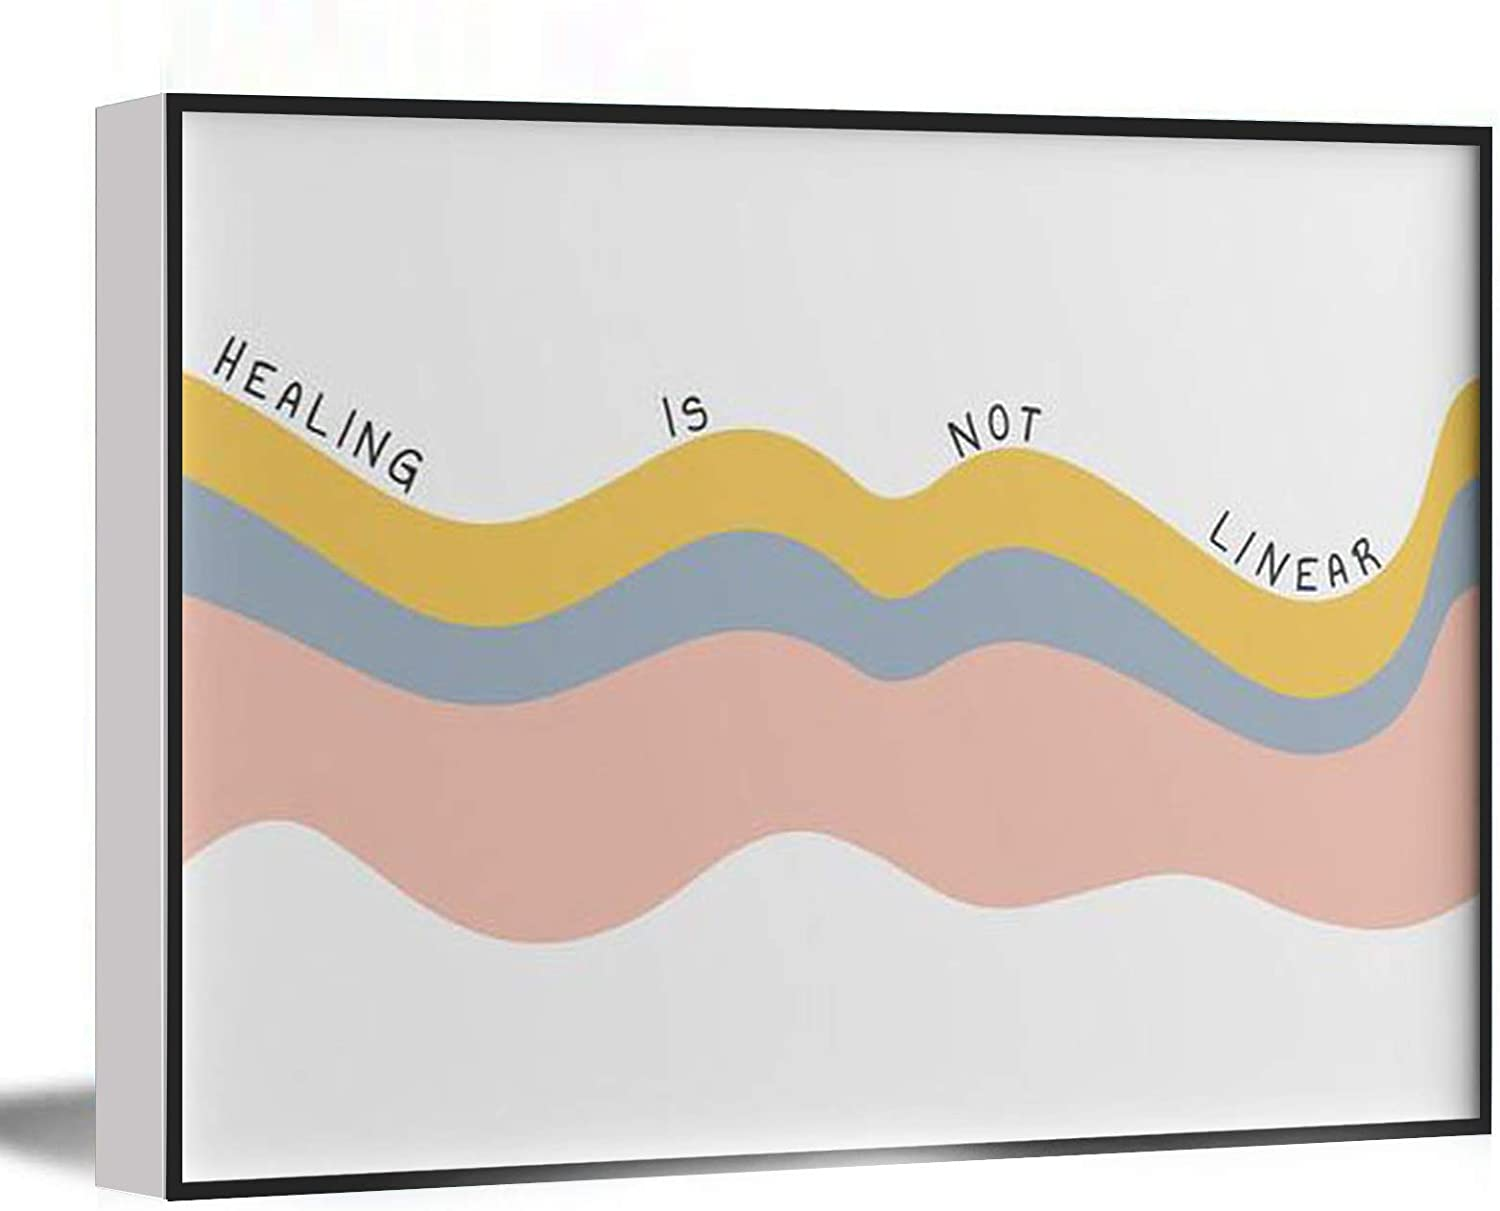 Funny Bathroom Decor,Mental Health Poster,Quote,Therapy,Counsellor,Psychologist Office Wall Art,Heal Portrait Landscape,8''x12'' Framed Modern Canvas Wall Art,